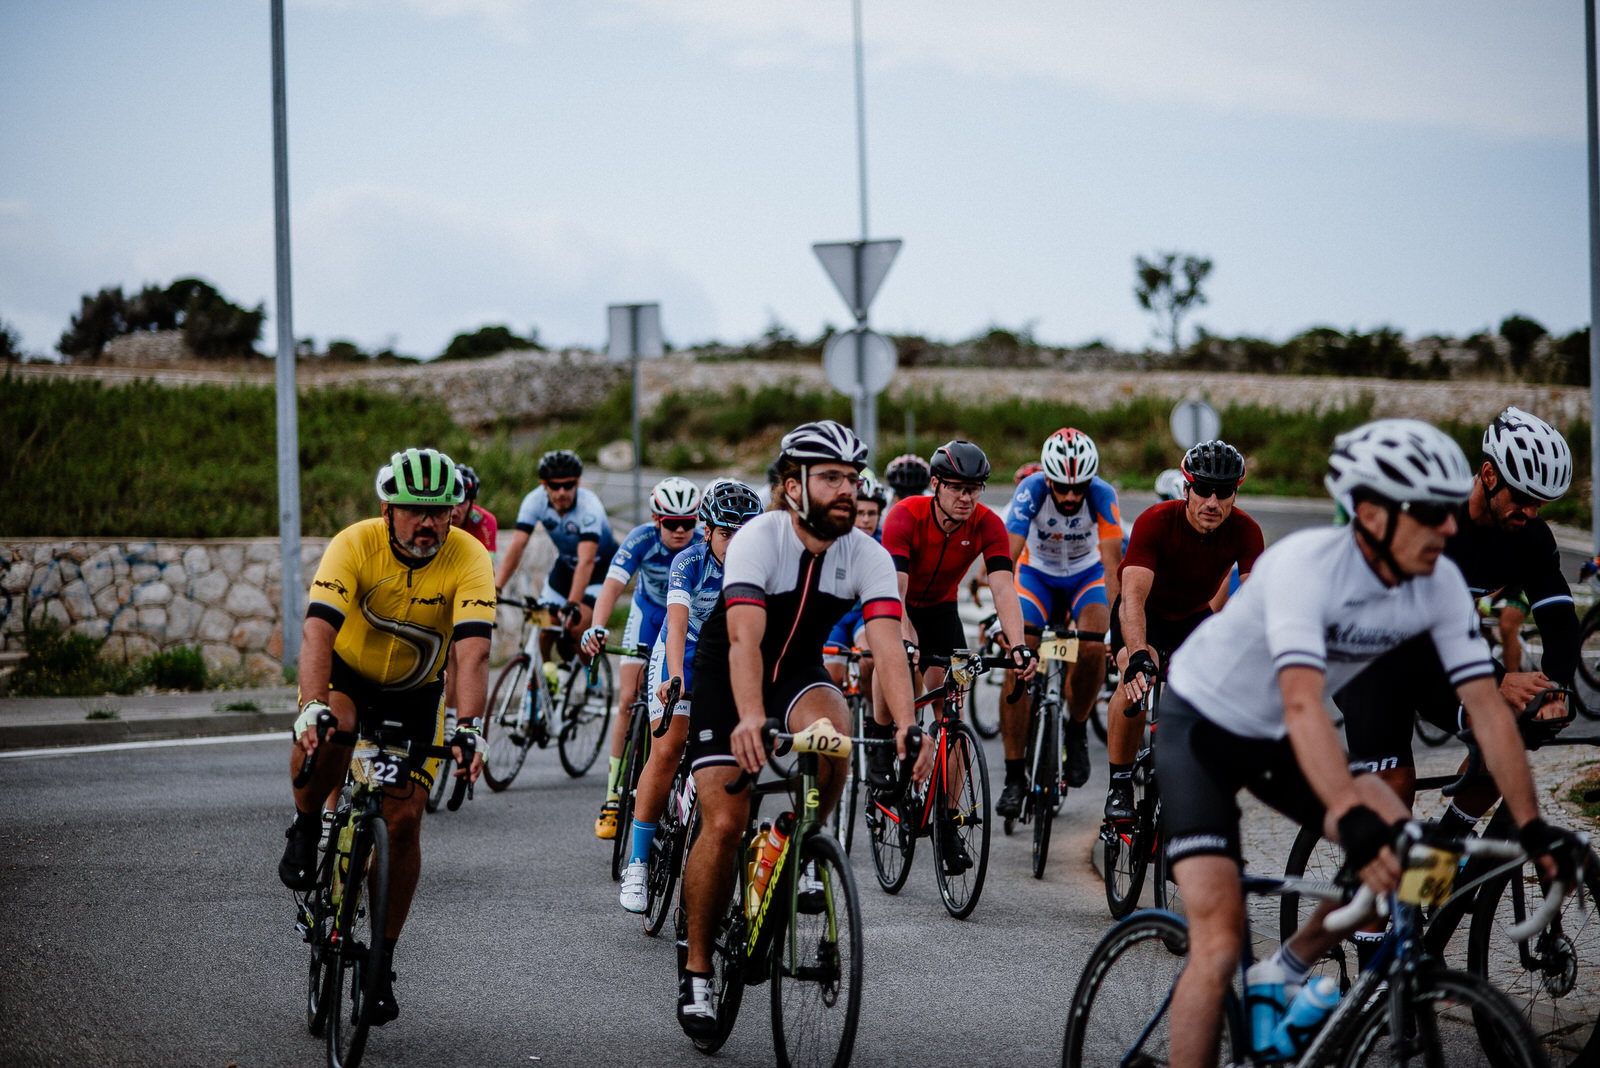 likaclub_Granfondo-Pag-–-Cycling-on-the-Moon_2019-7